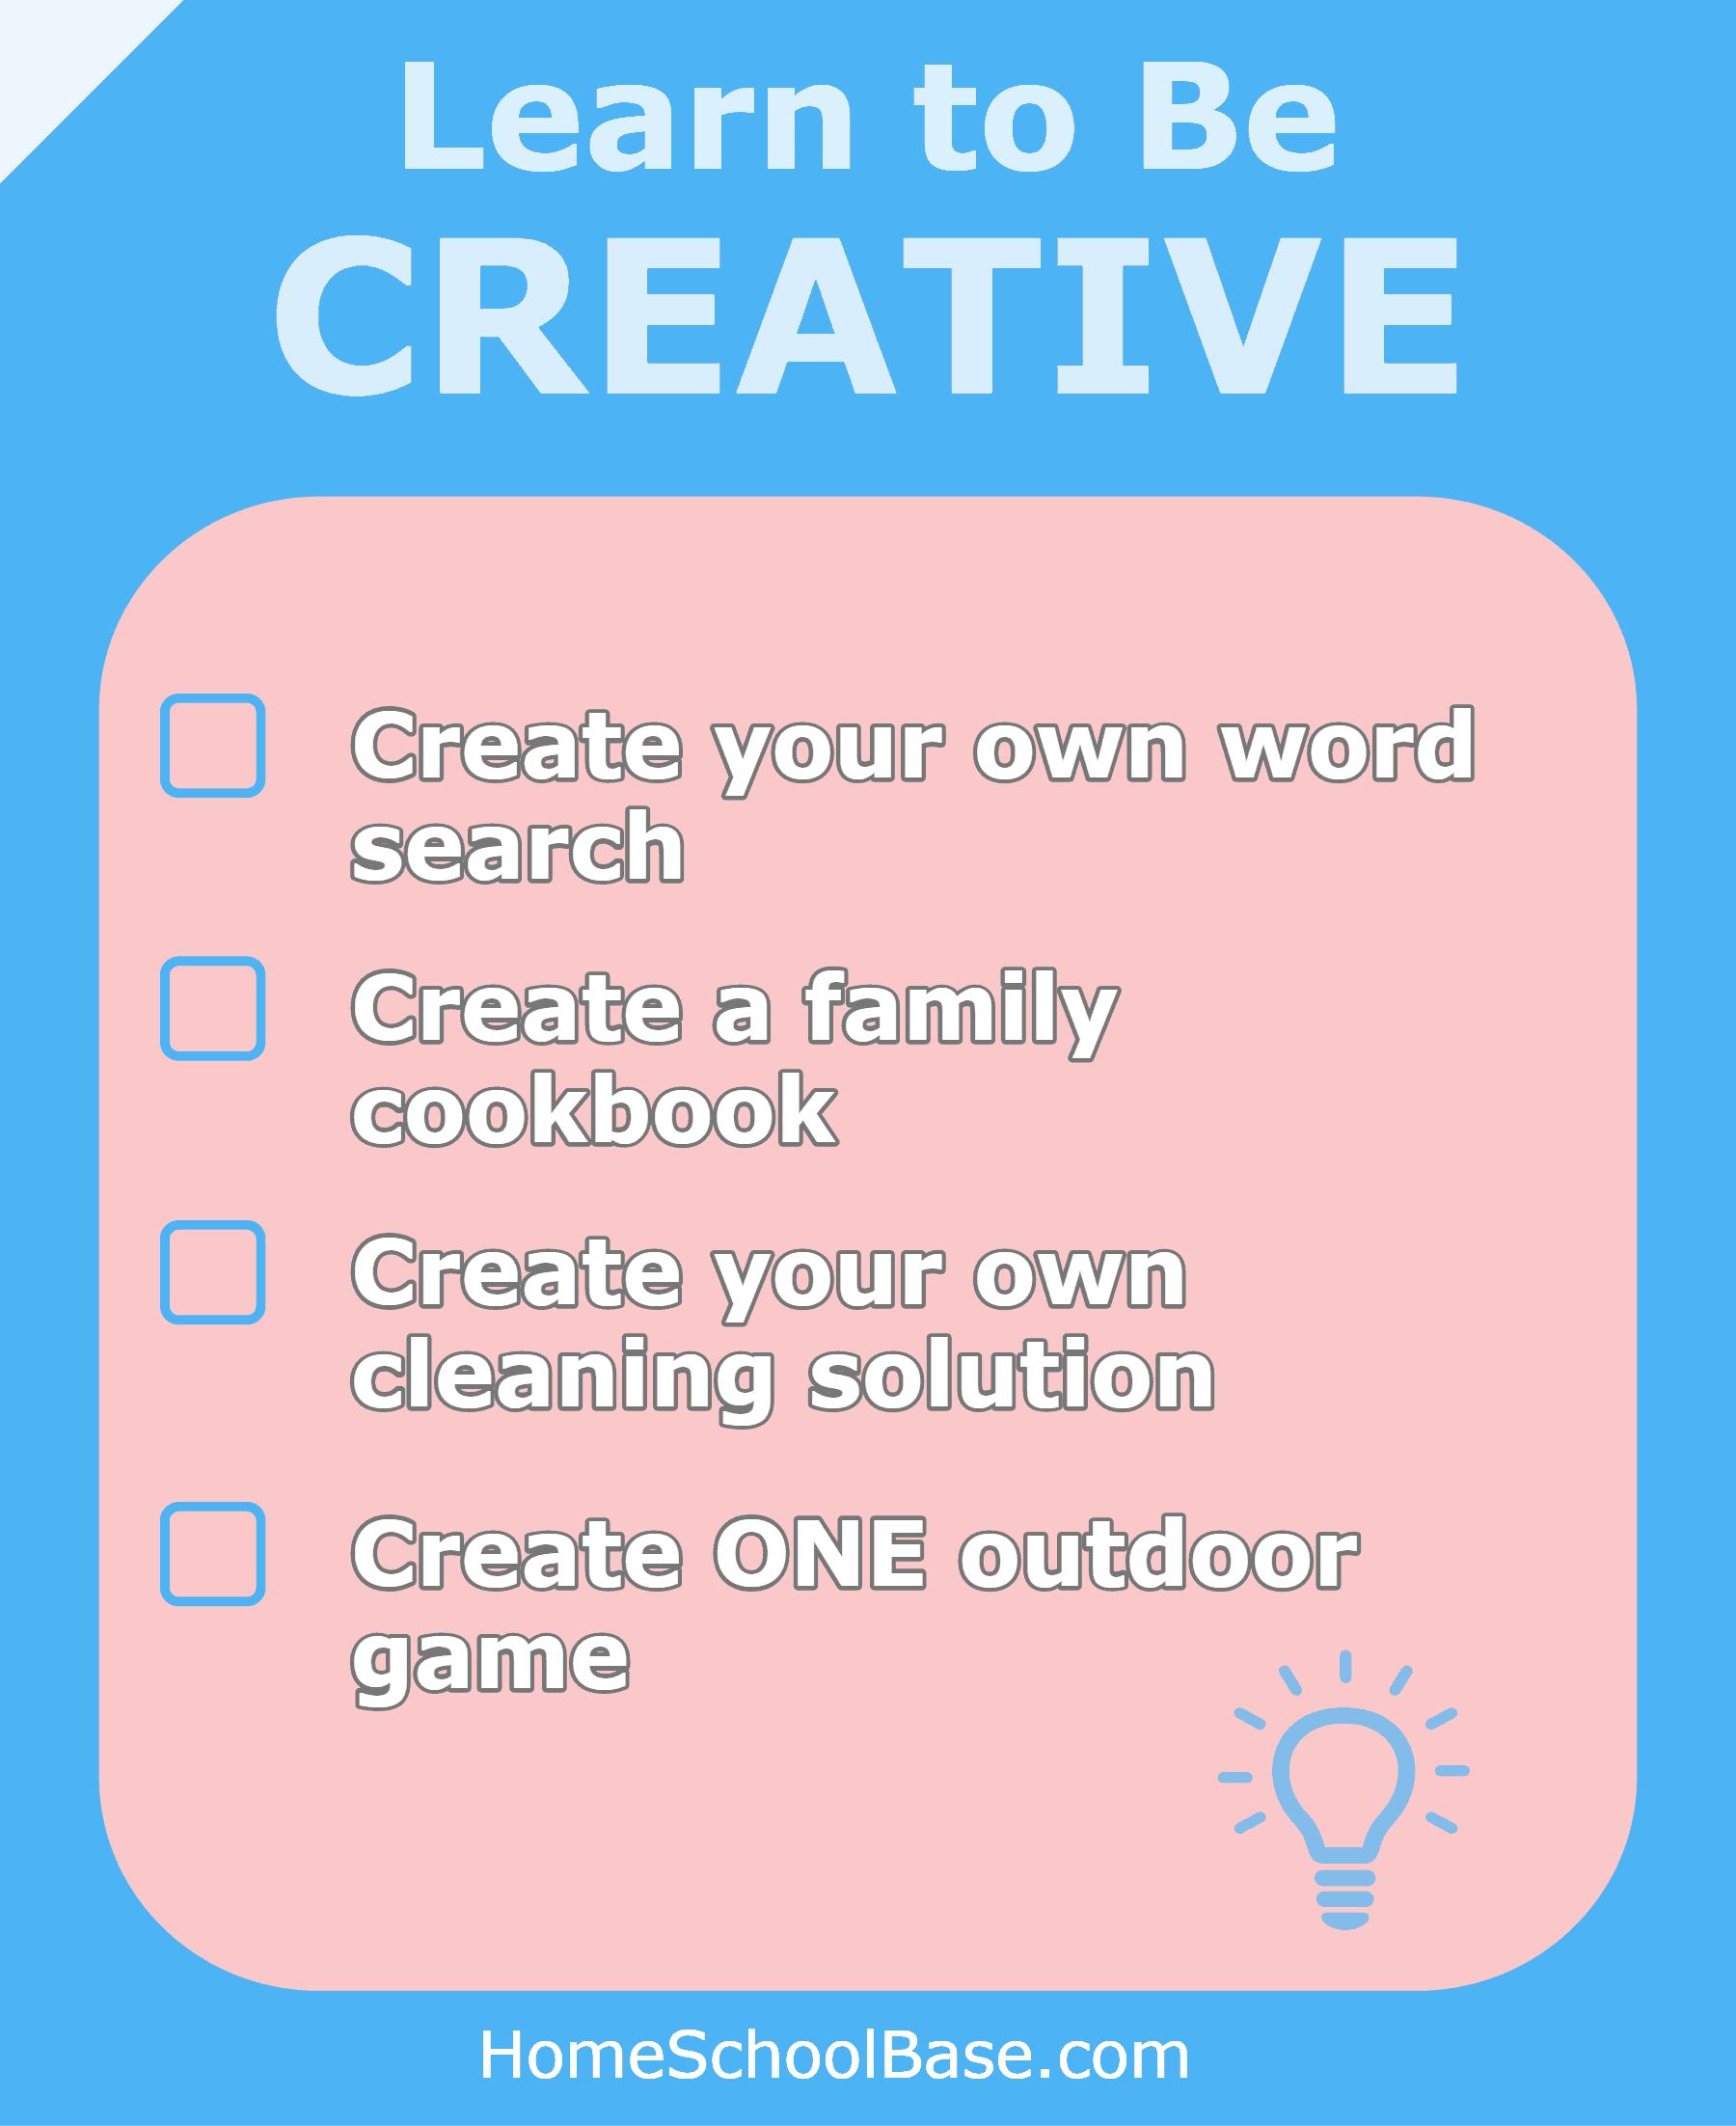 Learn to be creative